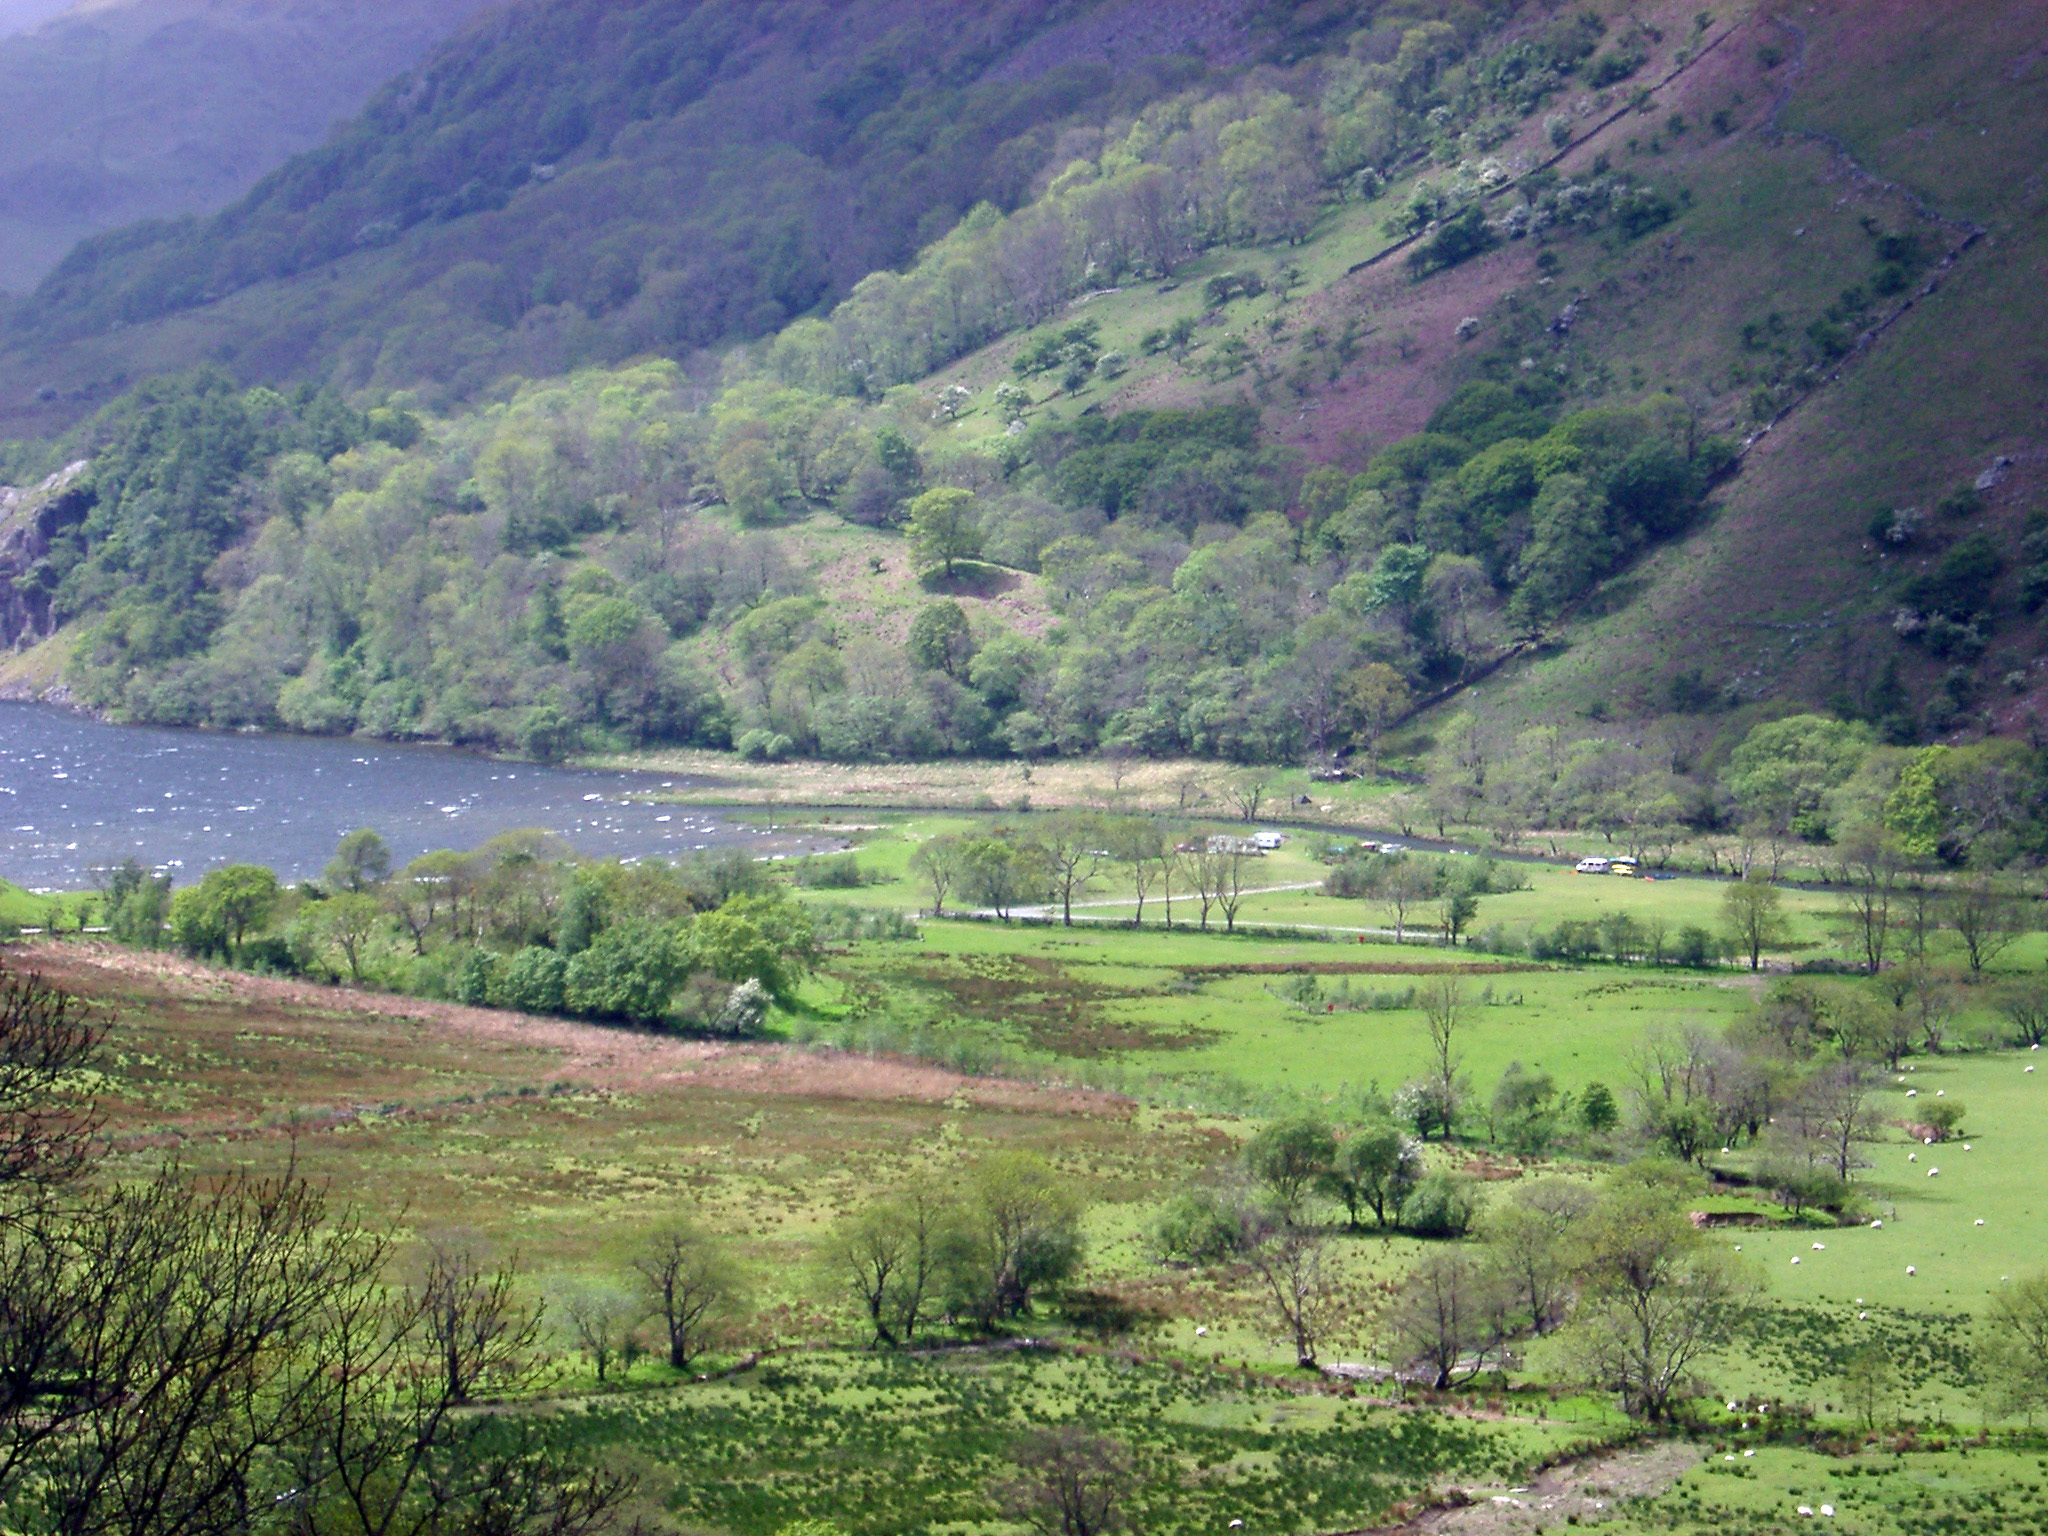 Lush valley with a farmhouse leading to a tranquil lake between steep mountains in Wales